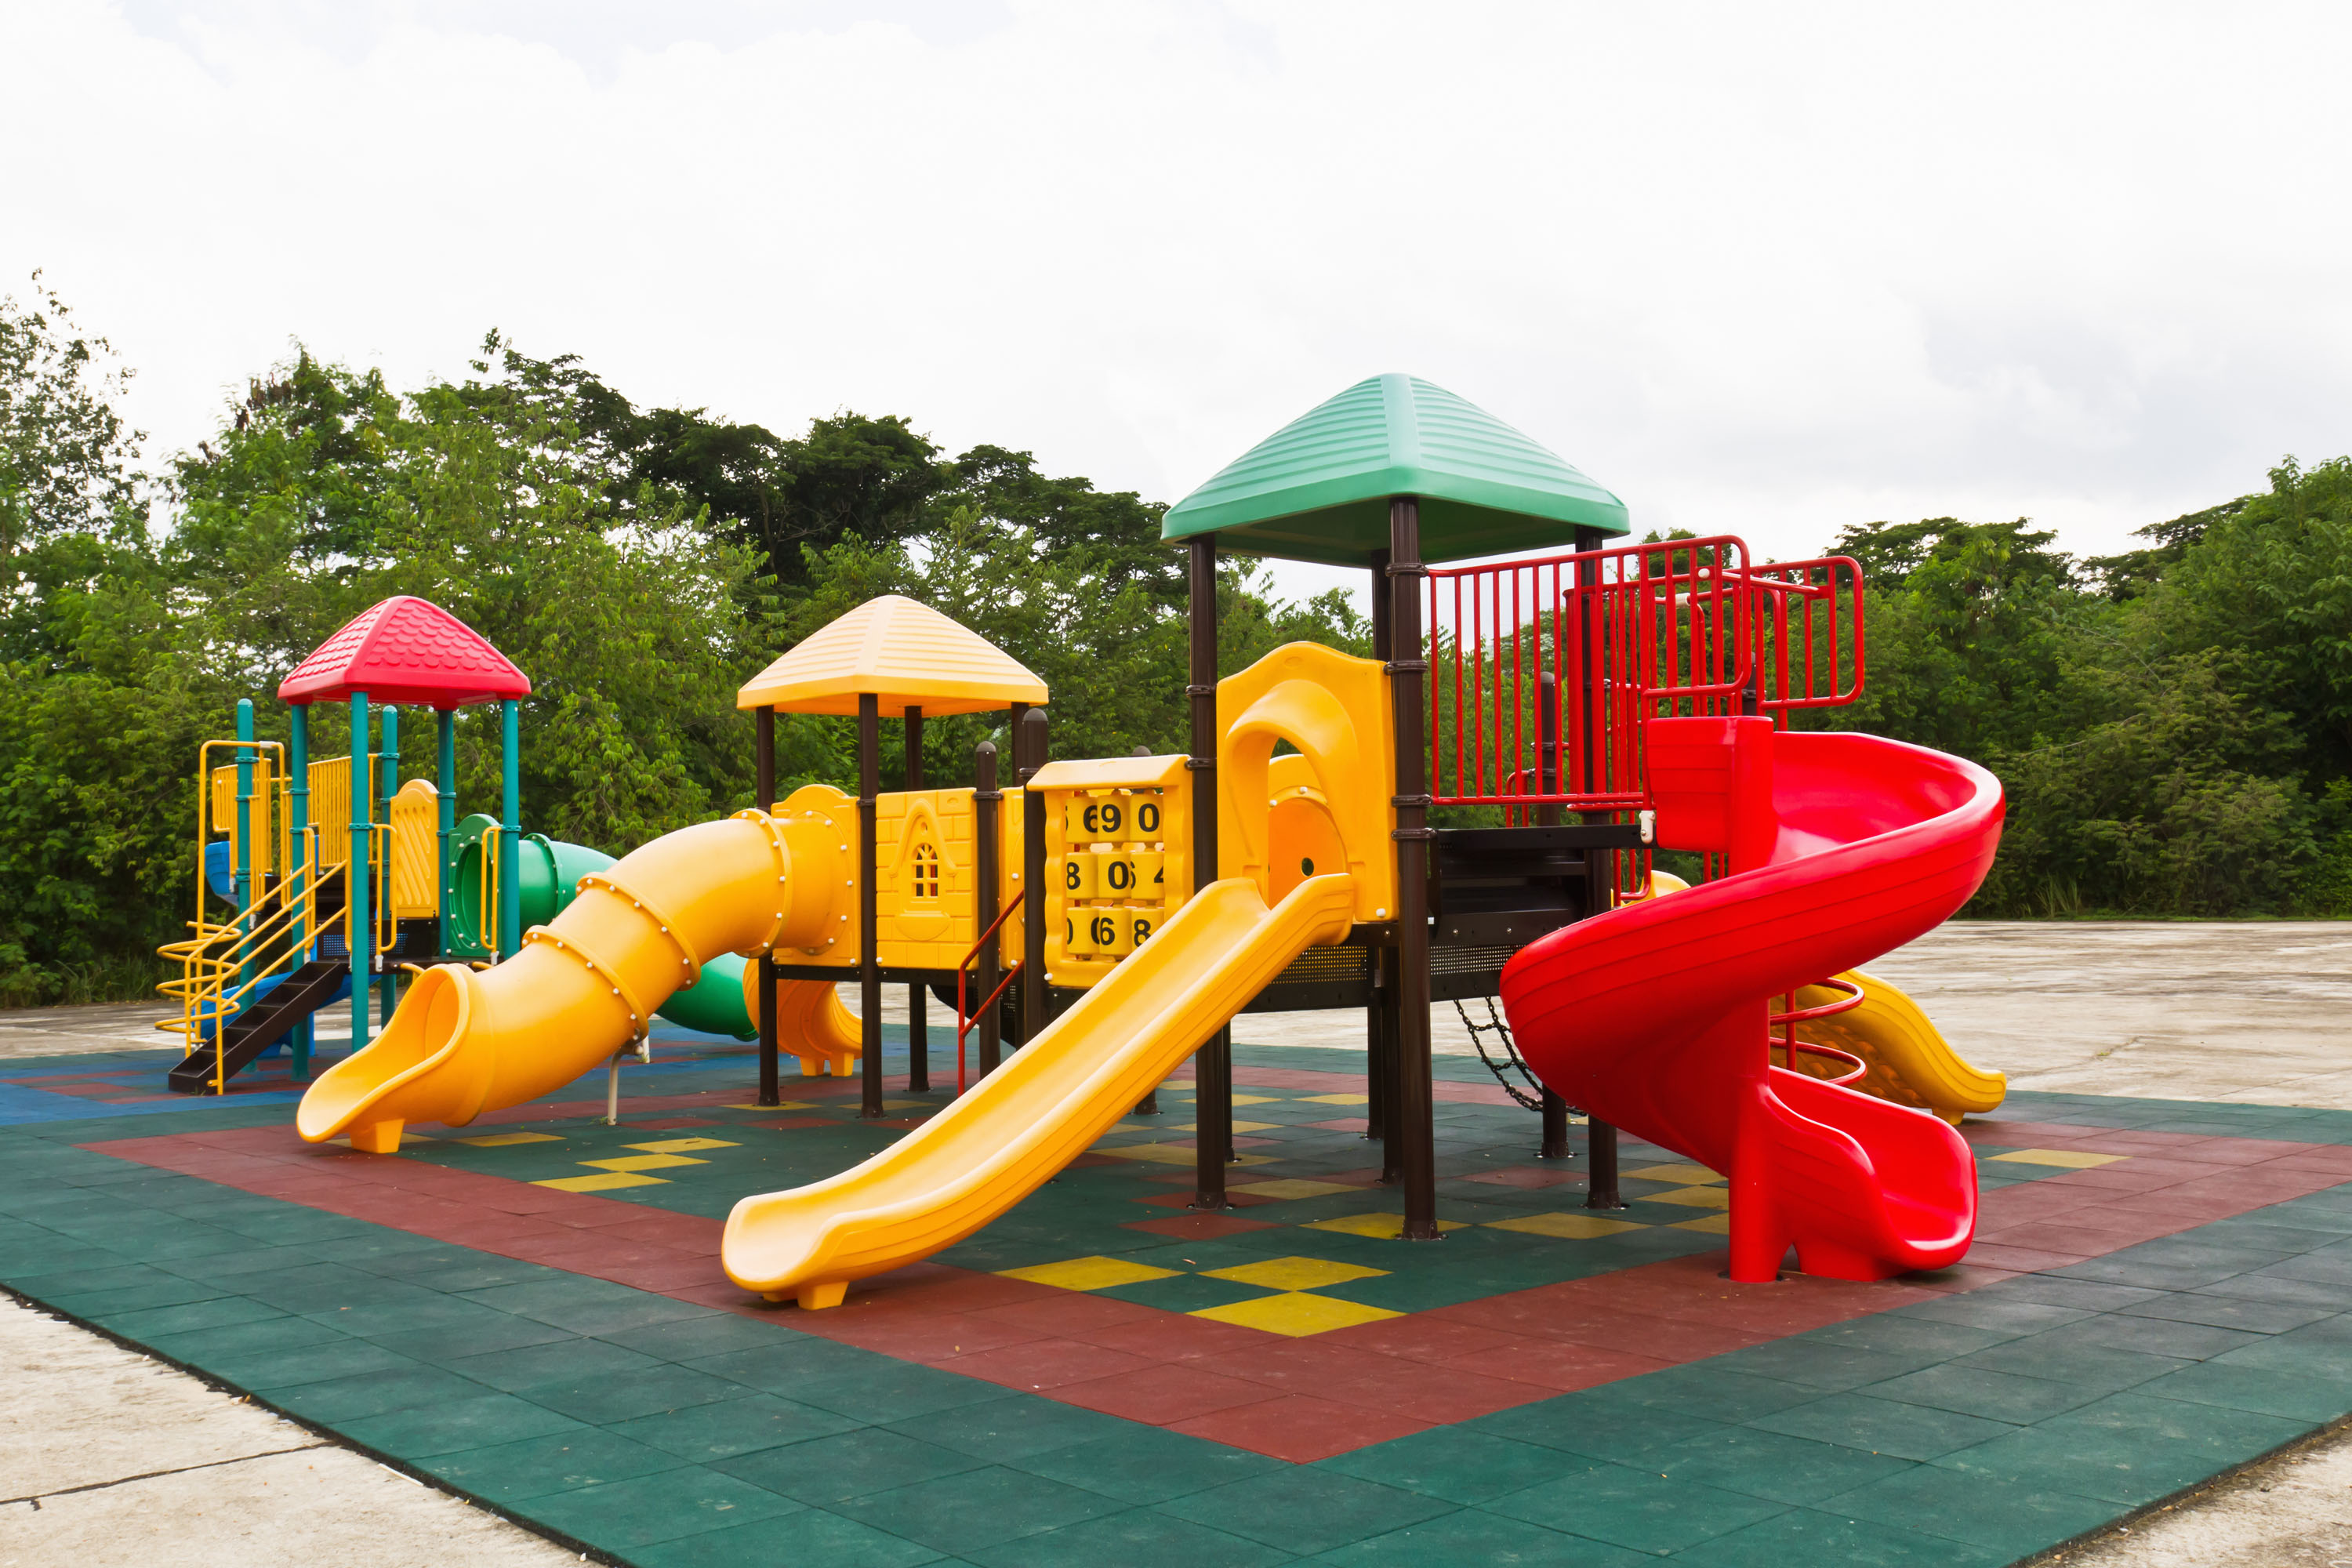 Bright, colorful playground with rubber mulch flooring